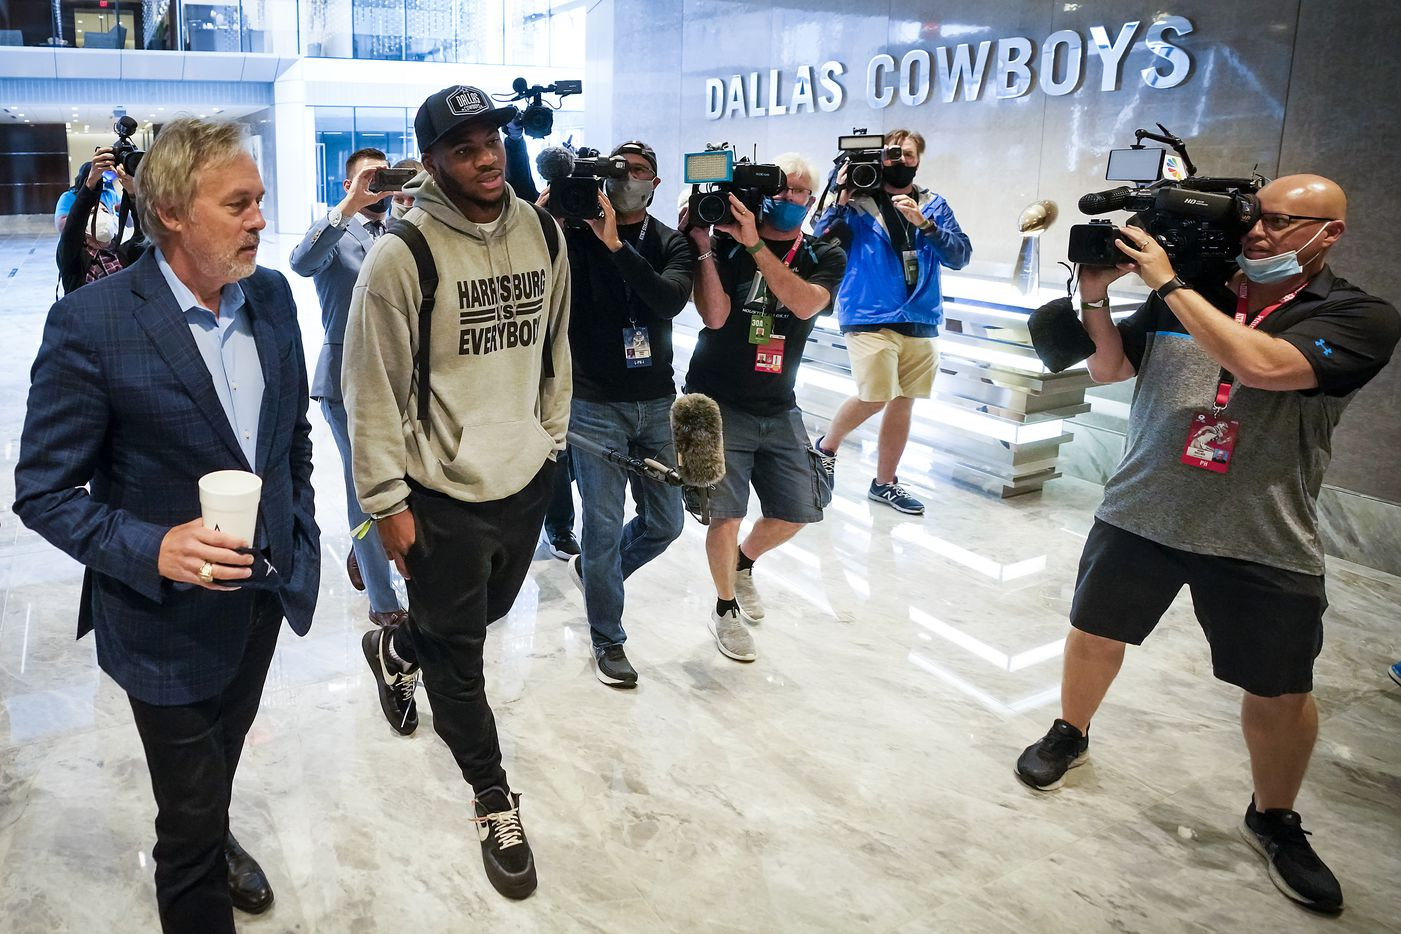 Dallas Cowboys first-round draft pick Micah Parsons, a linebacker from Penn State, gets a tour from senior vice president of public relations and communications Rich Dalrymple as he arrives at The Star on Friday, April 30, 2021, in Frisco. (Smiley N. Pool/The Dallas Morning News)